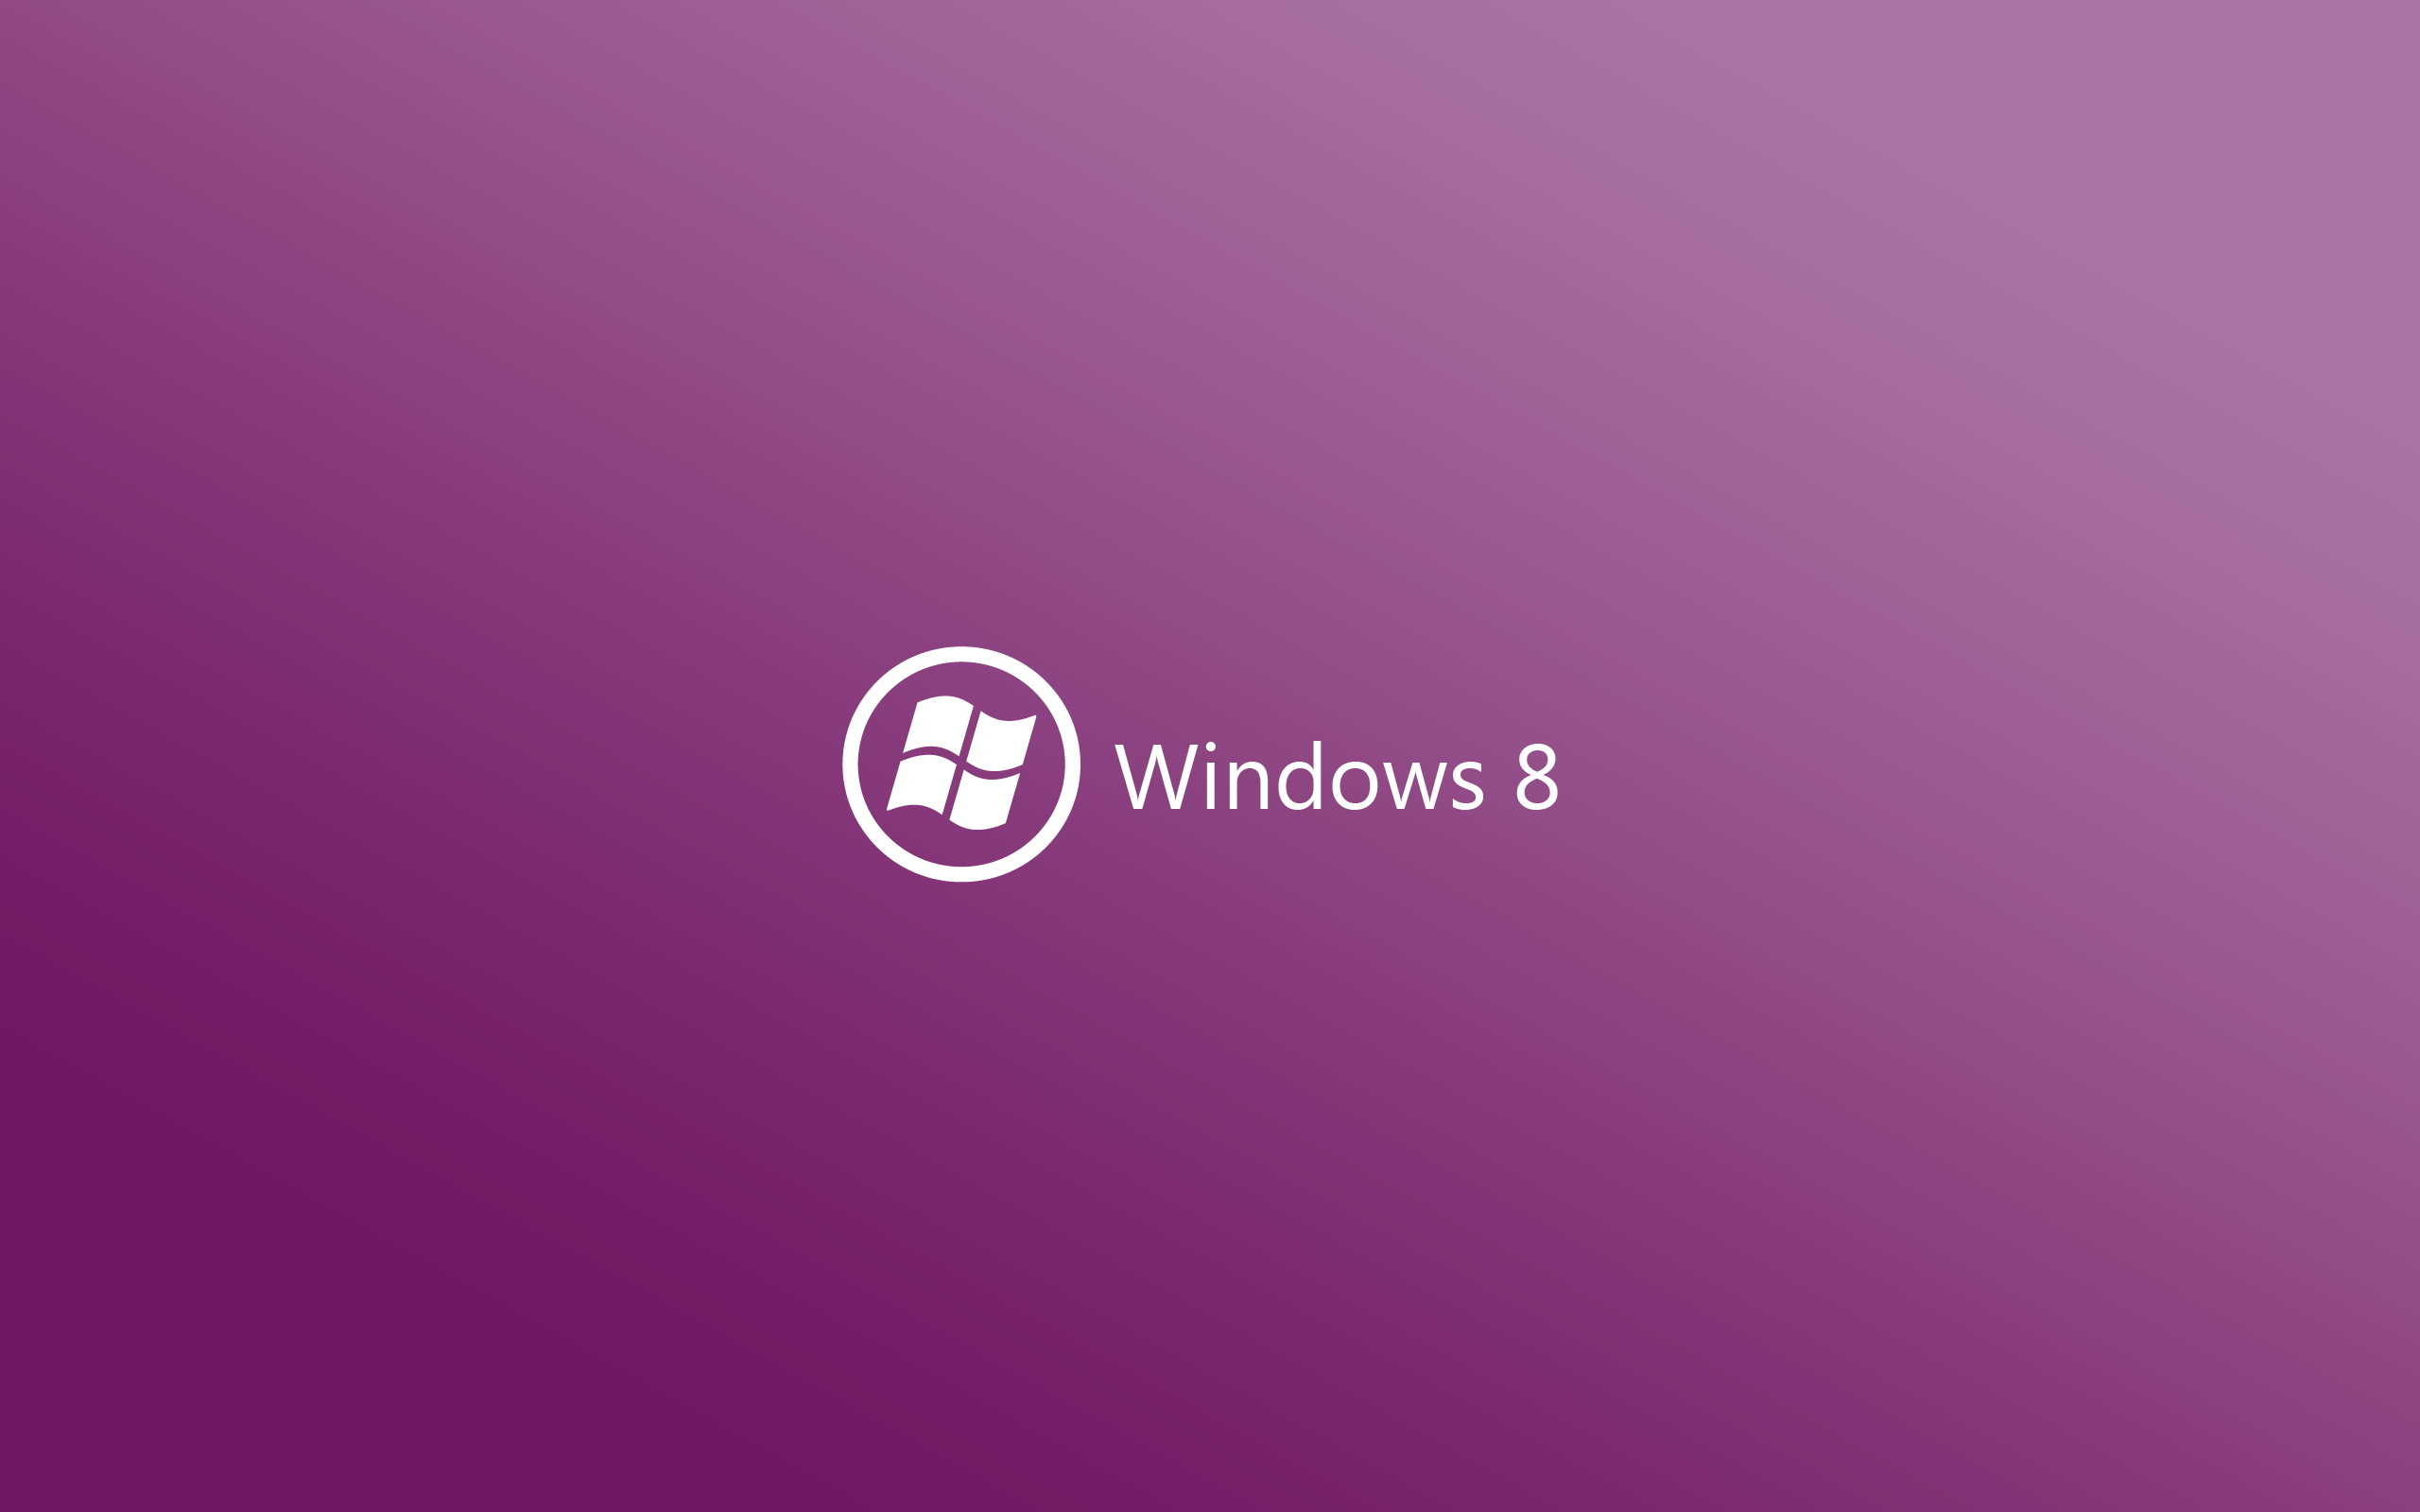 windows 8.1 wallpapers, pictures, images